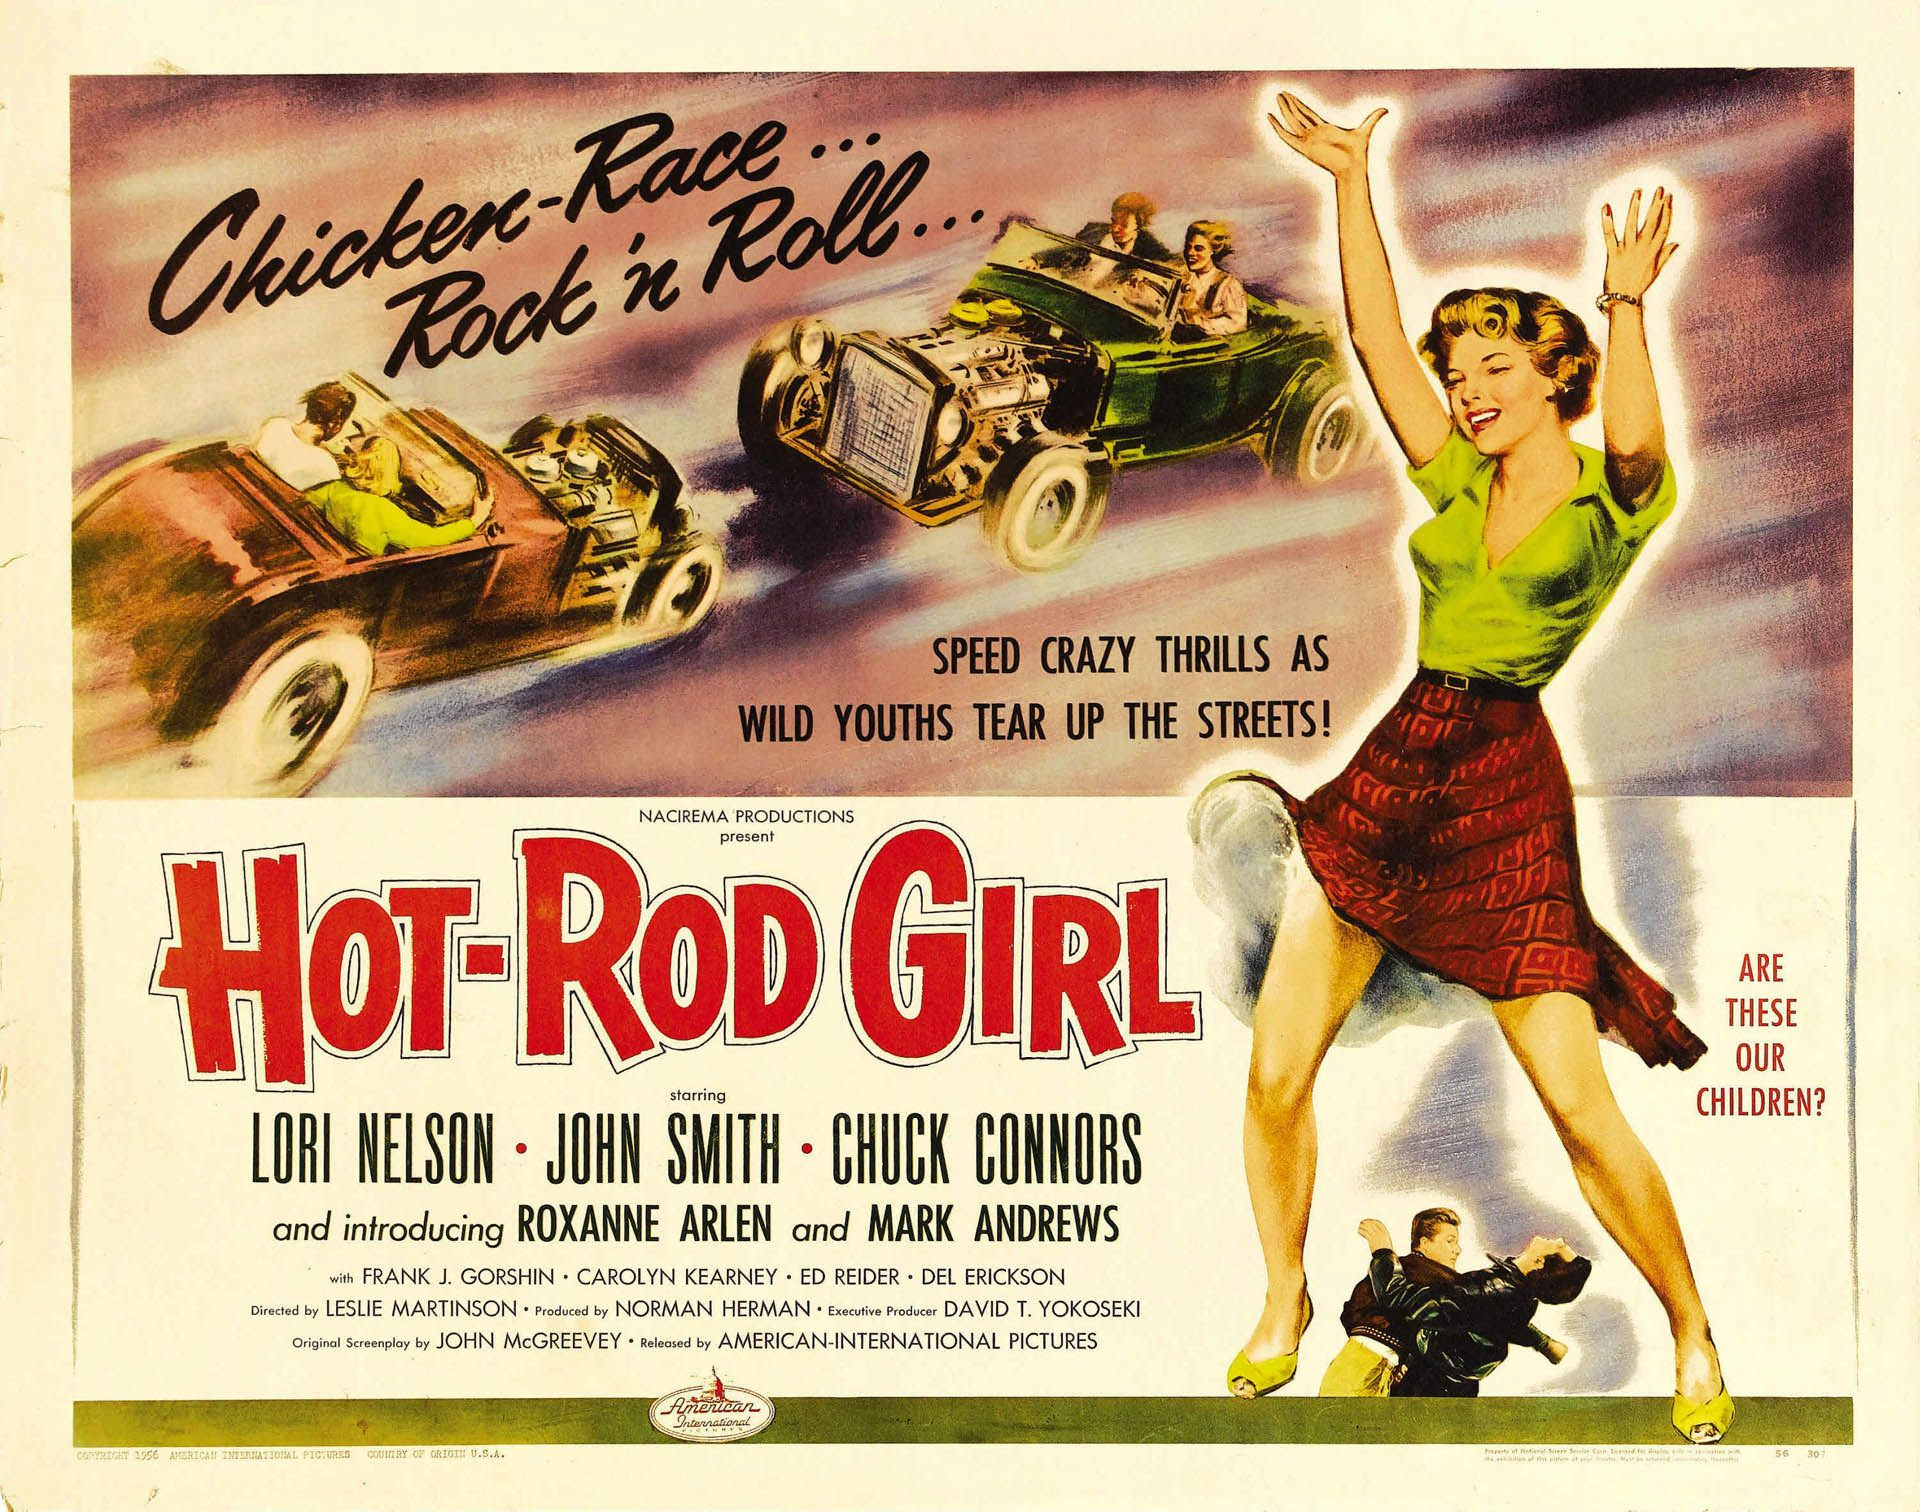 Hot Rod Girl - Full Length Film | Hot rod movie, Cars and 32 ford